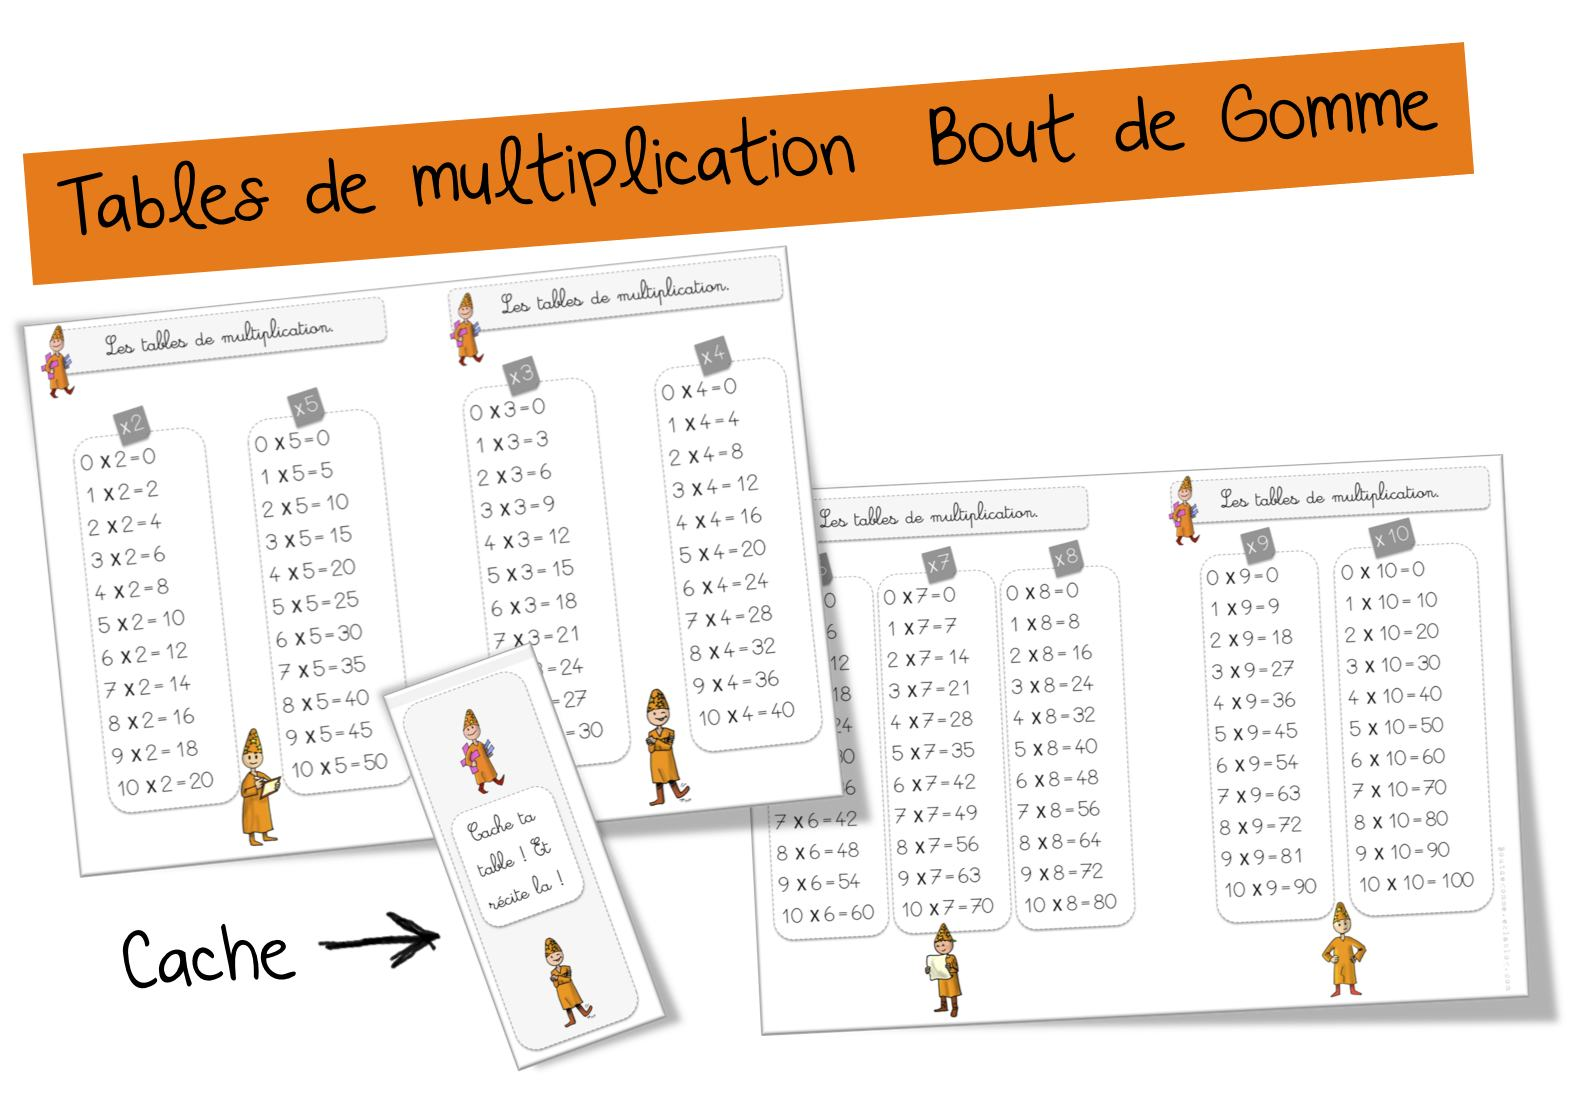 Exercice table multiplication 3 4 5 table de for Table de multiplication de 7 8 9